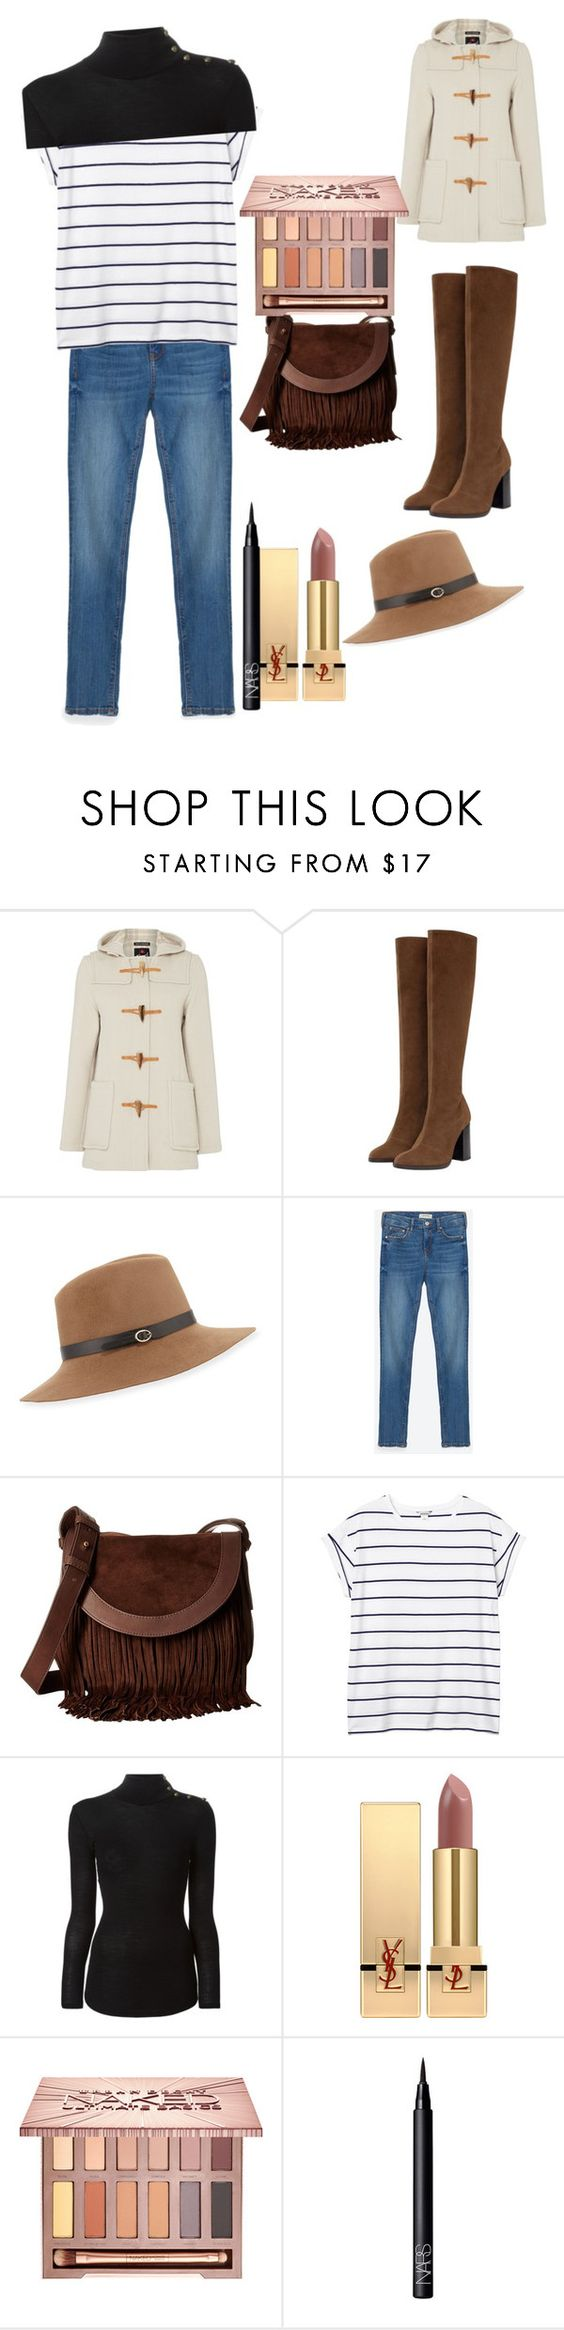 """""""Untitled #596"""" by samson-90 ❤ liked on Polyvore featuring Gloverall, Zara, Inverni, Frye, Monki, Balmain, Yves Saint Laurent, Urban Decay and NARS Cosmetics"""